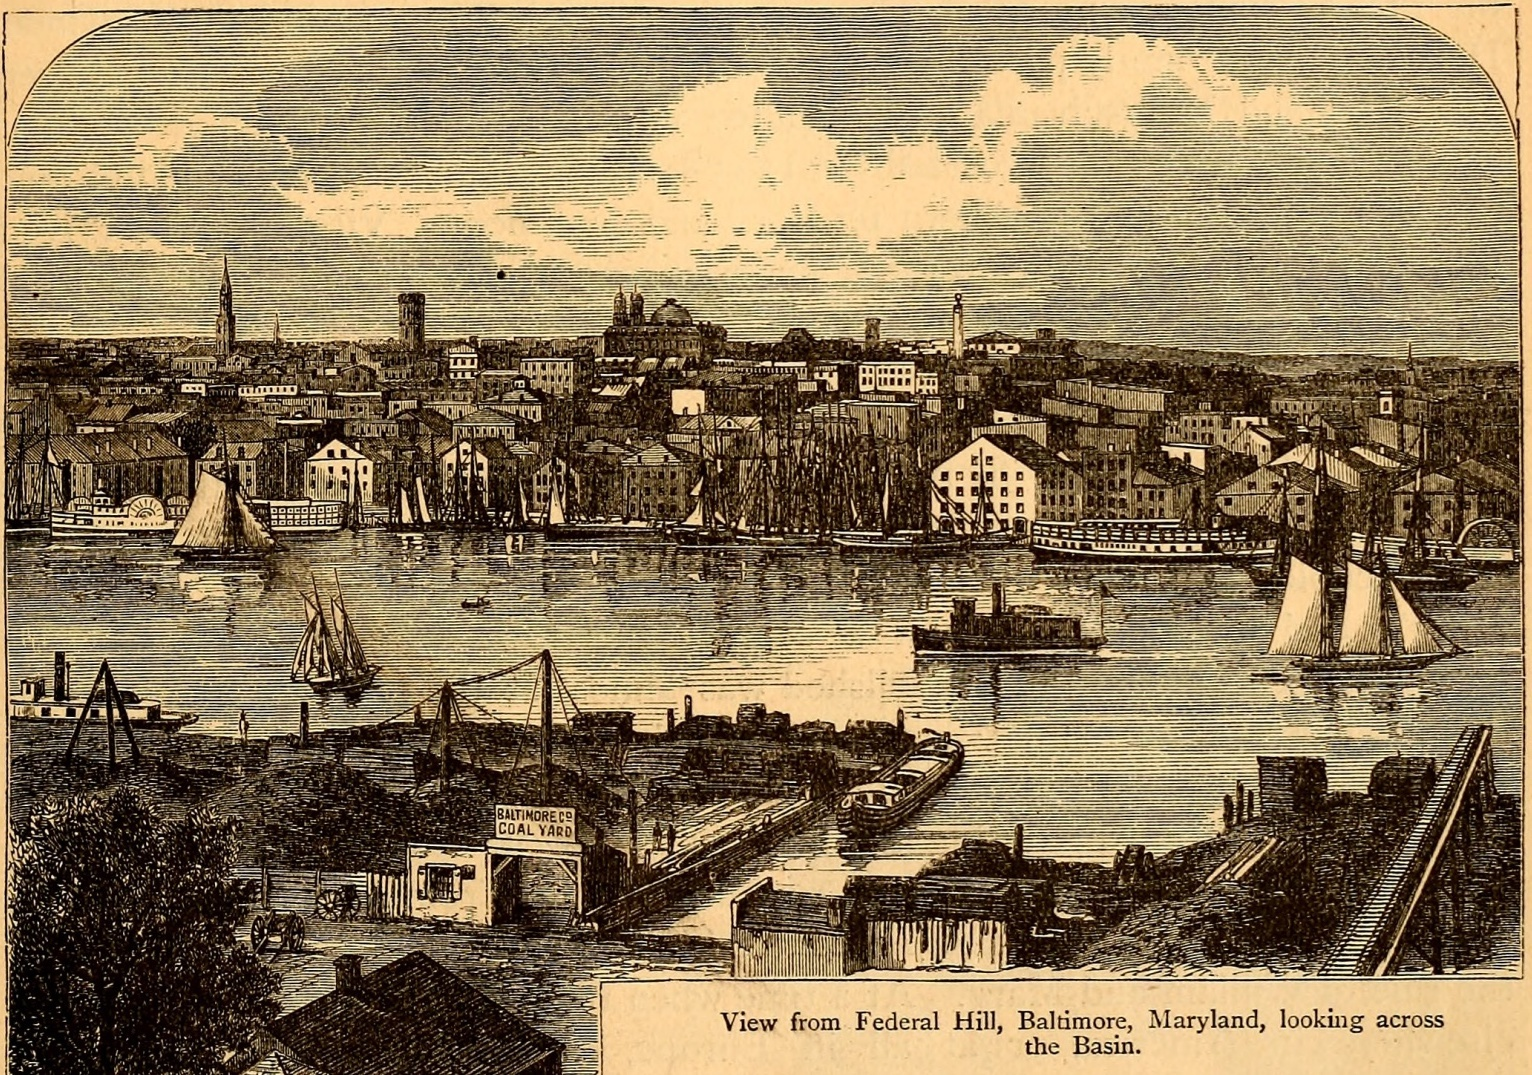 Print image of Baltimore harbor.